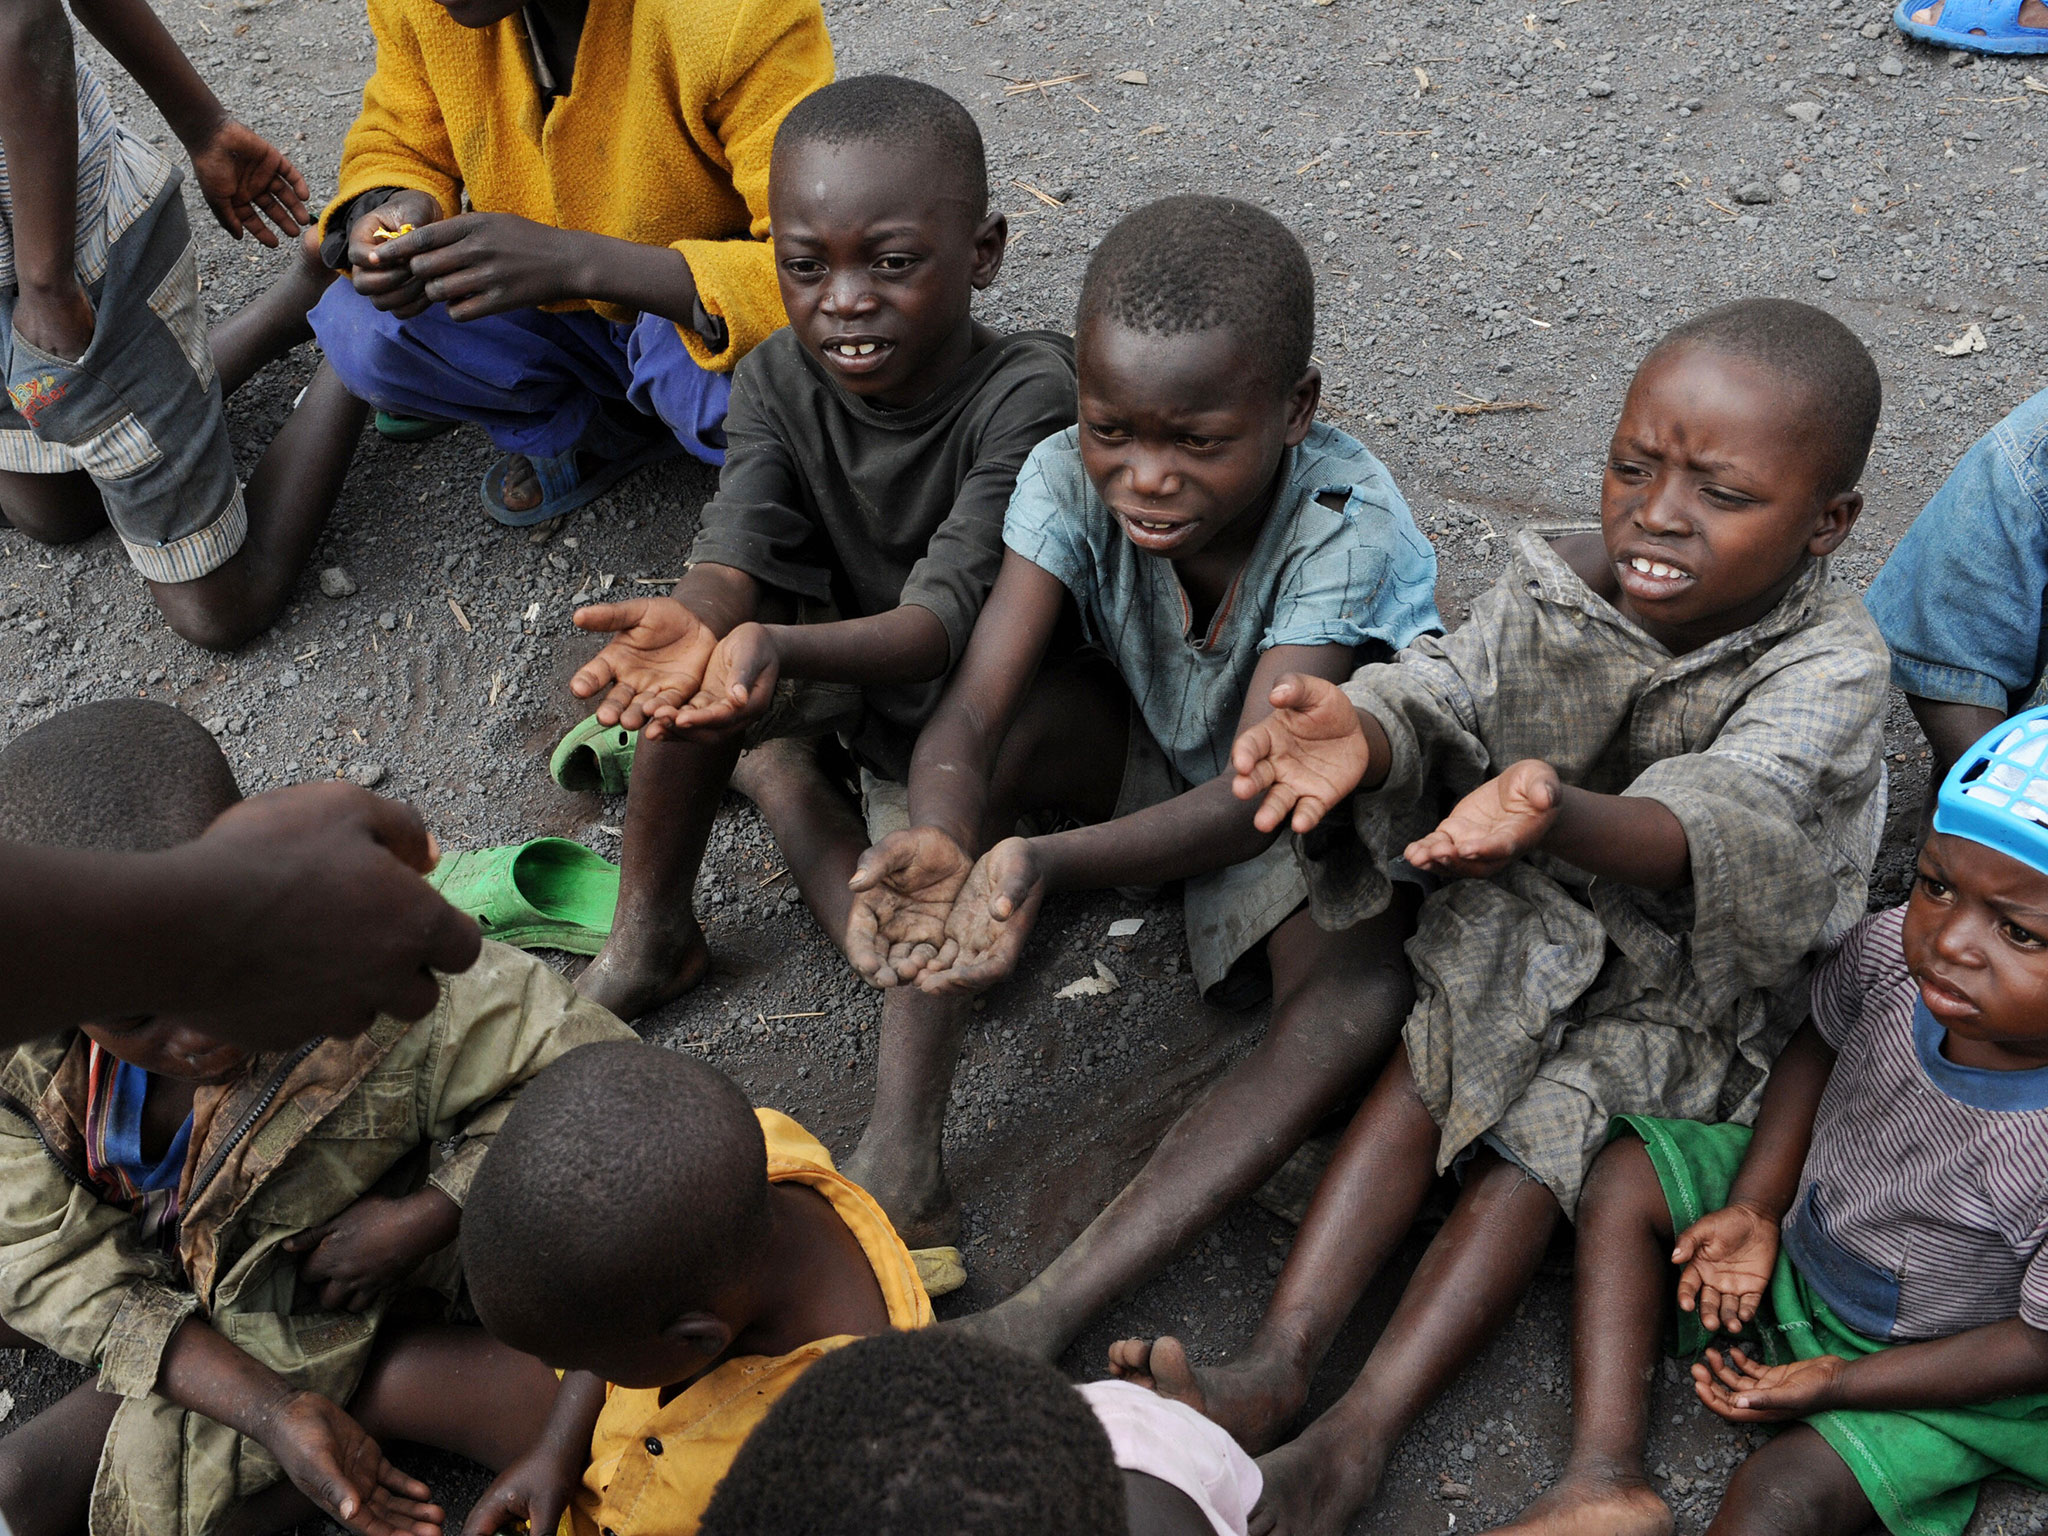 2m children in Congo at risk of starvation, UN warns